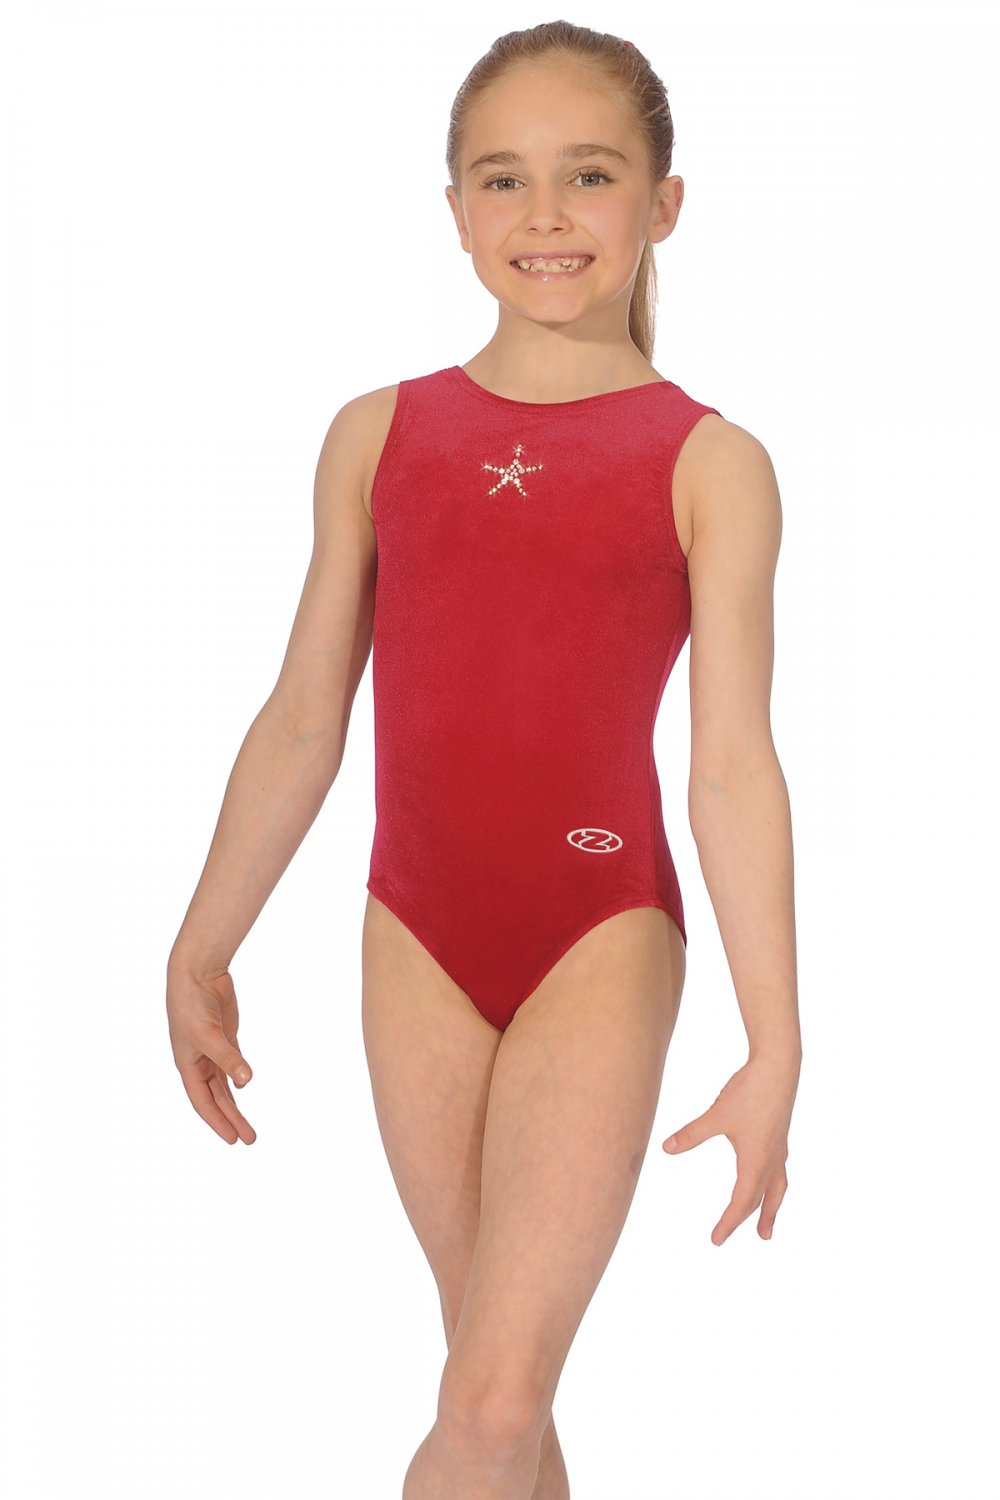 Girls Club Leotard - With its smooth velour/Lycra body and striking star jewel motif the club leotard is perfect for weekly training session and competitions.Material: Velour / LycraColour: RedSize: Available in various sizesPrice: £25 (Sizes 26-32) / £27 (Sizes 34+)